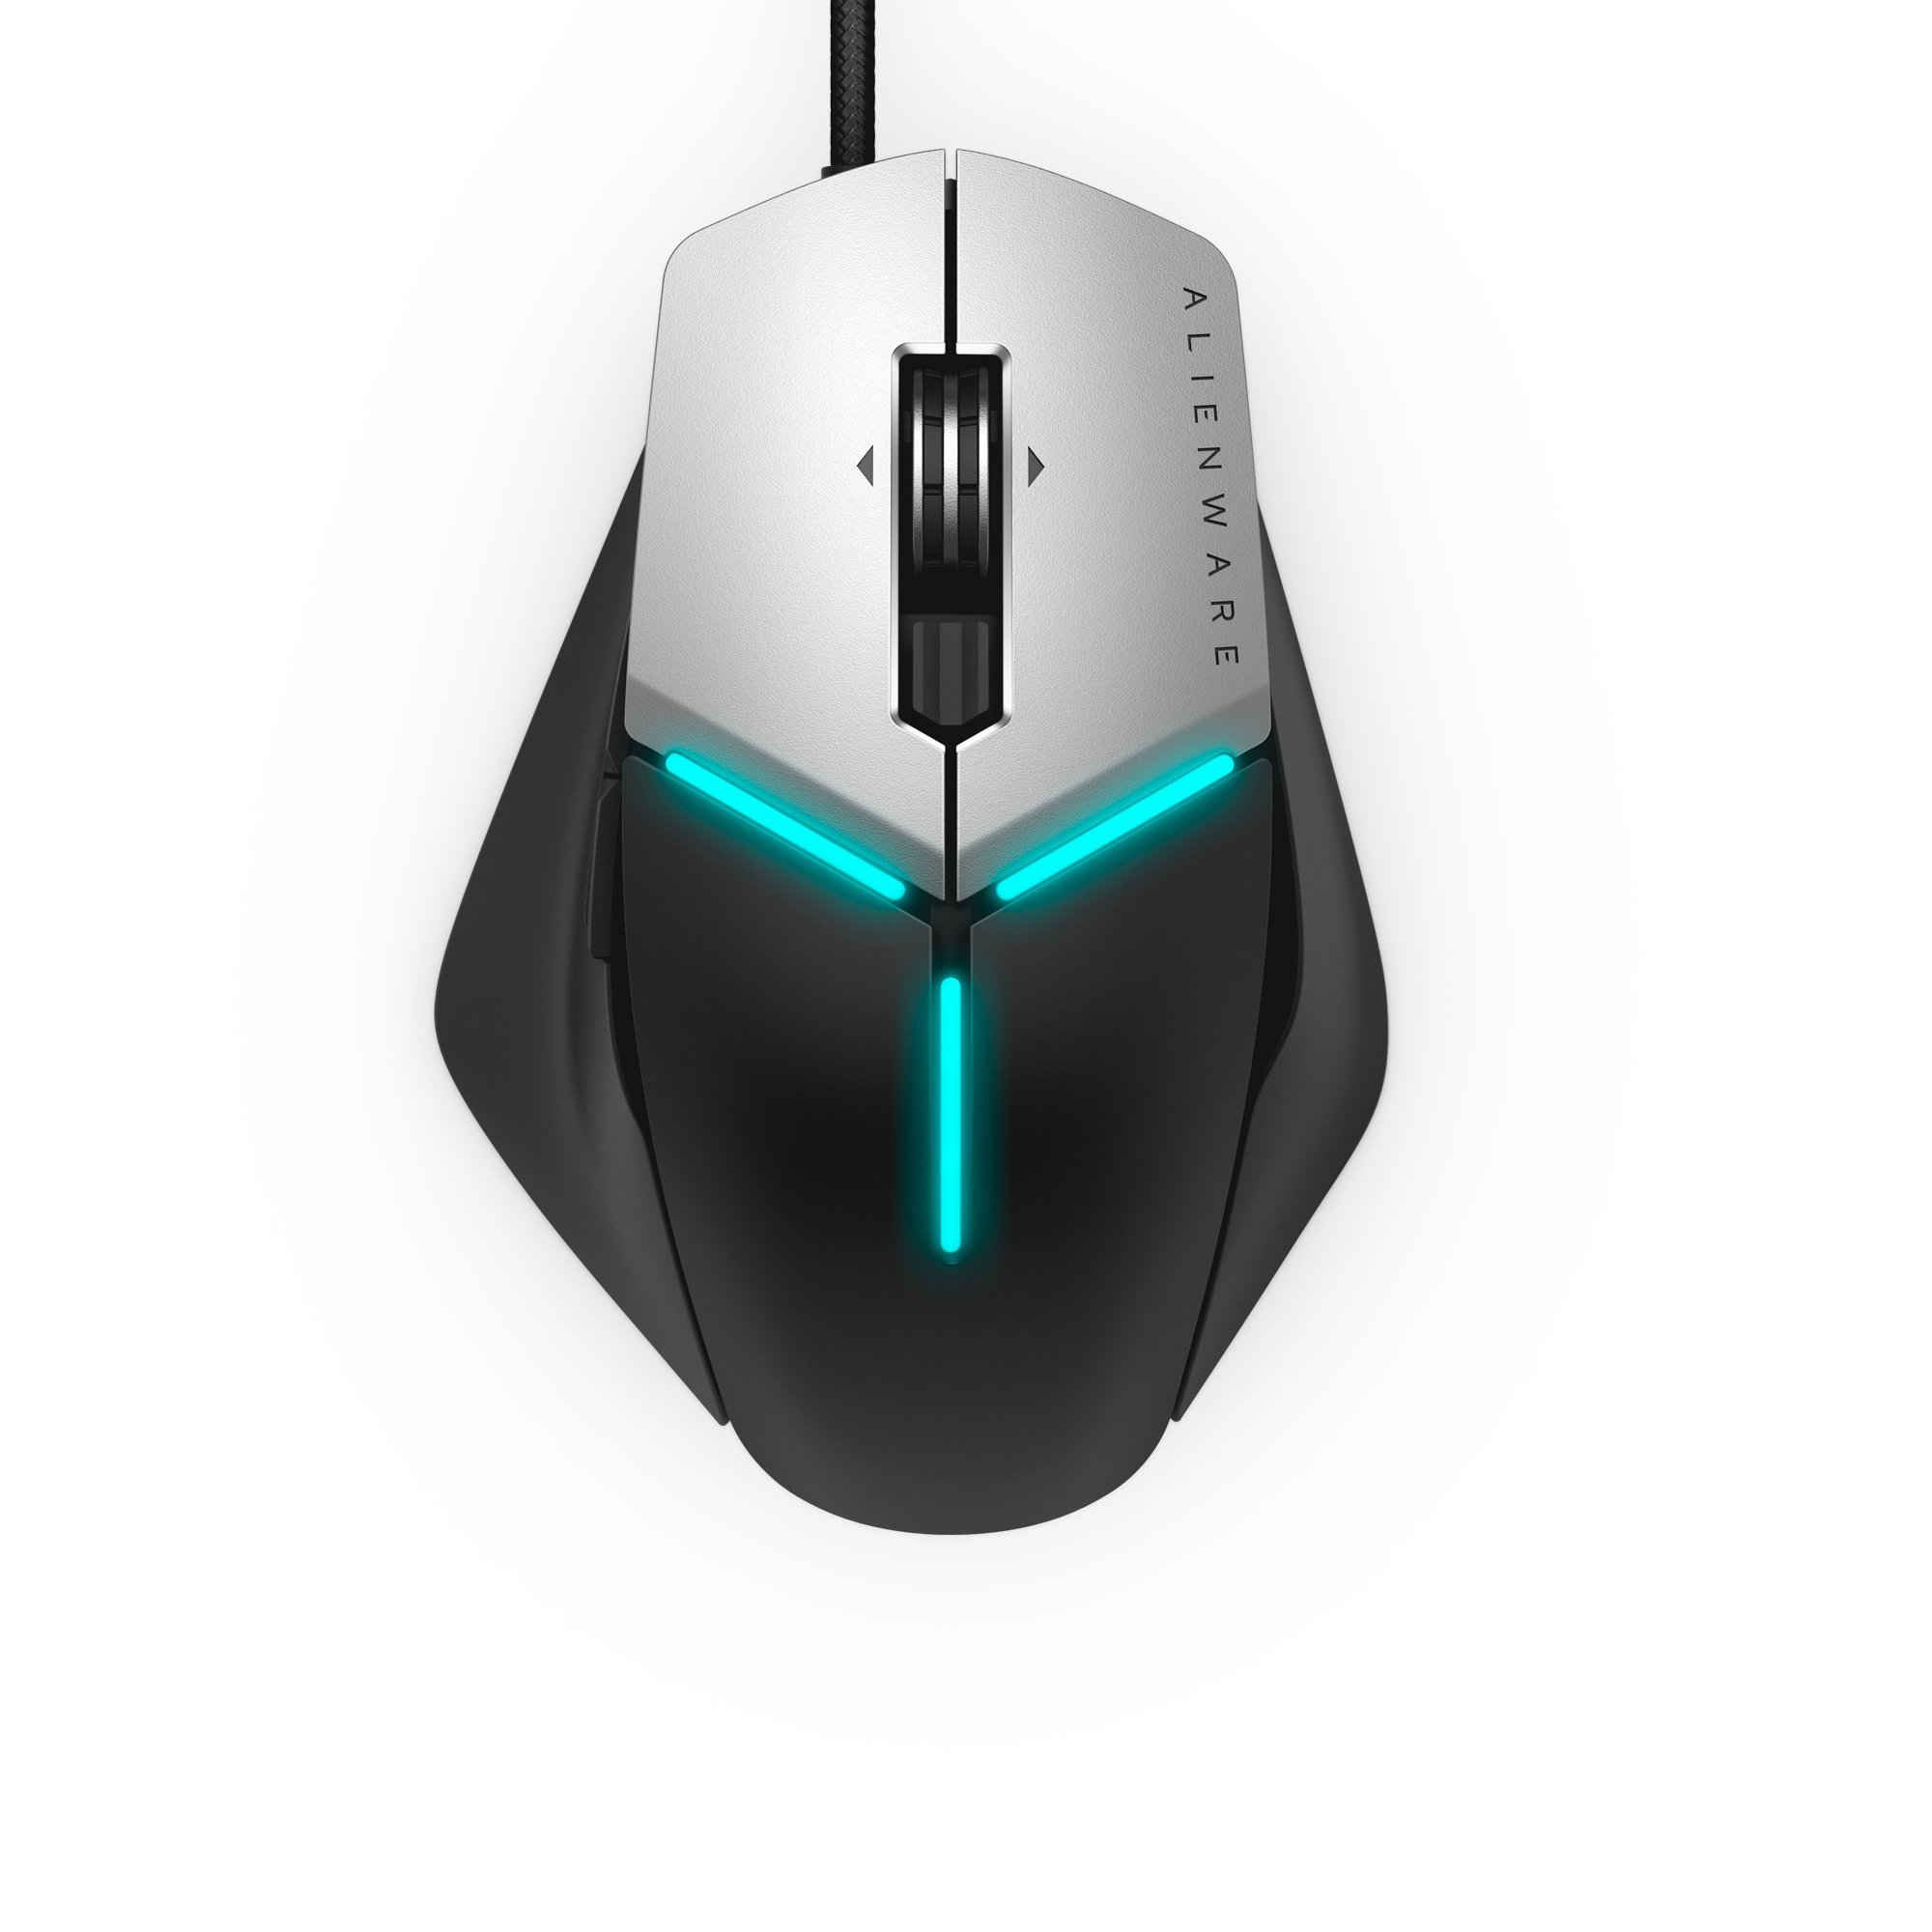 Alienware AW958 Gaming Mouse Review – STG